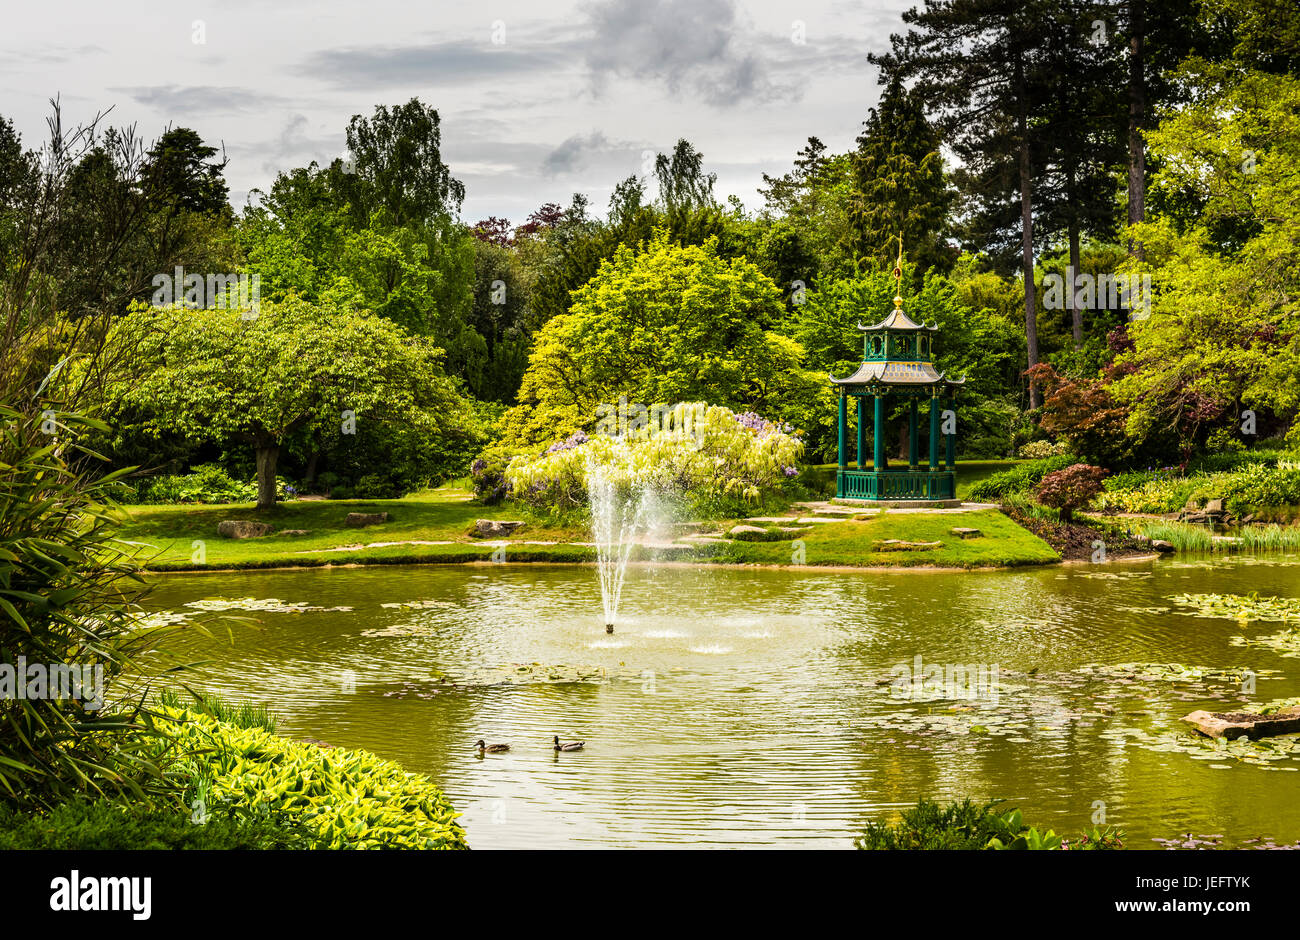 Lake, fountain and pergola in the water gardens at Cliveden, Buckinghamshire, UK - Stock Image